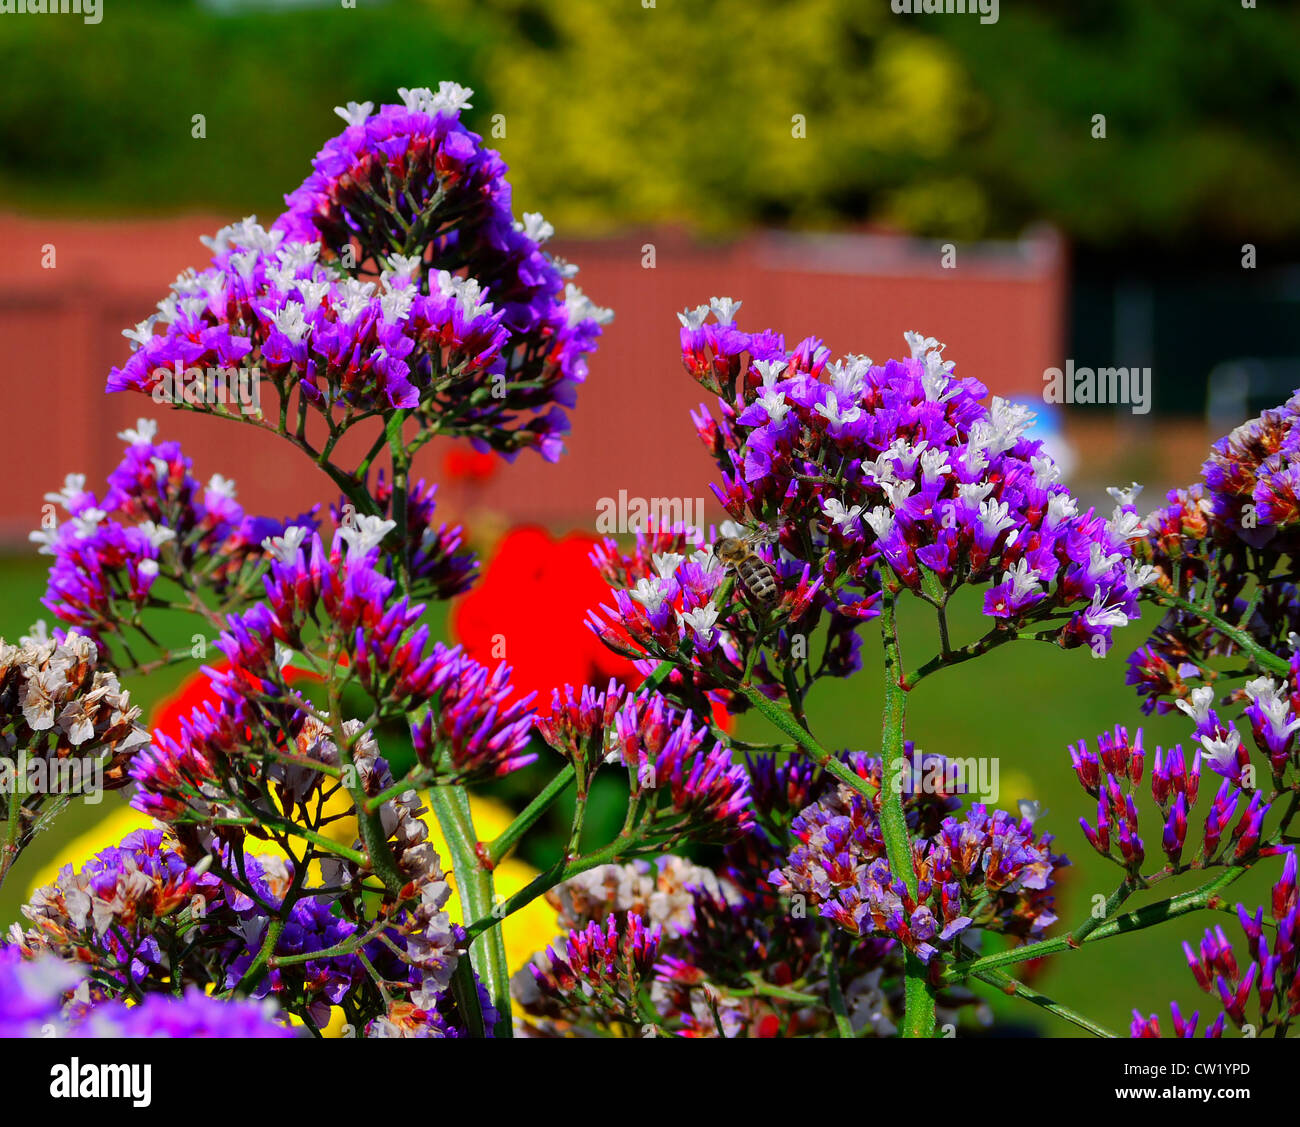 insects bees purple flowers HD wallpaper